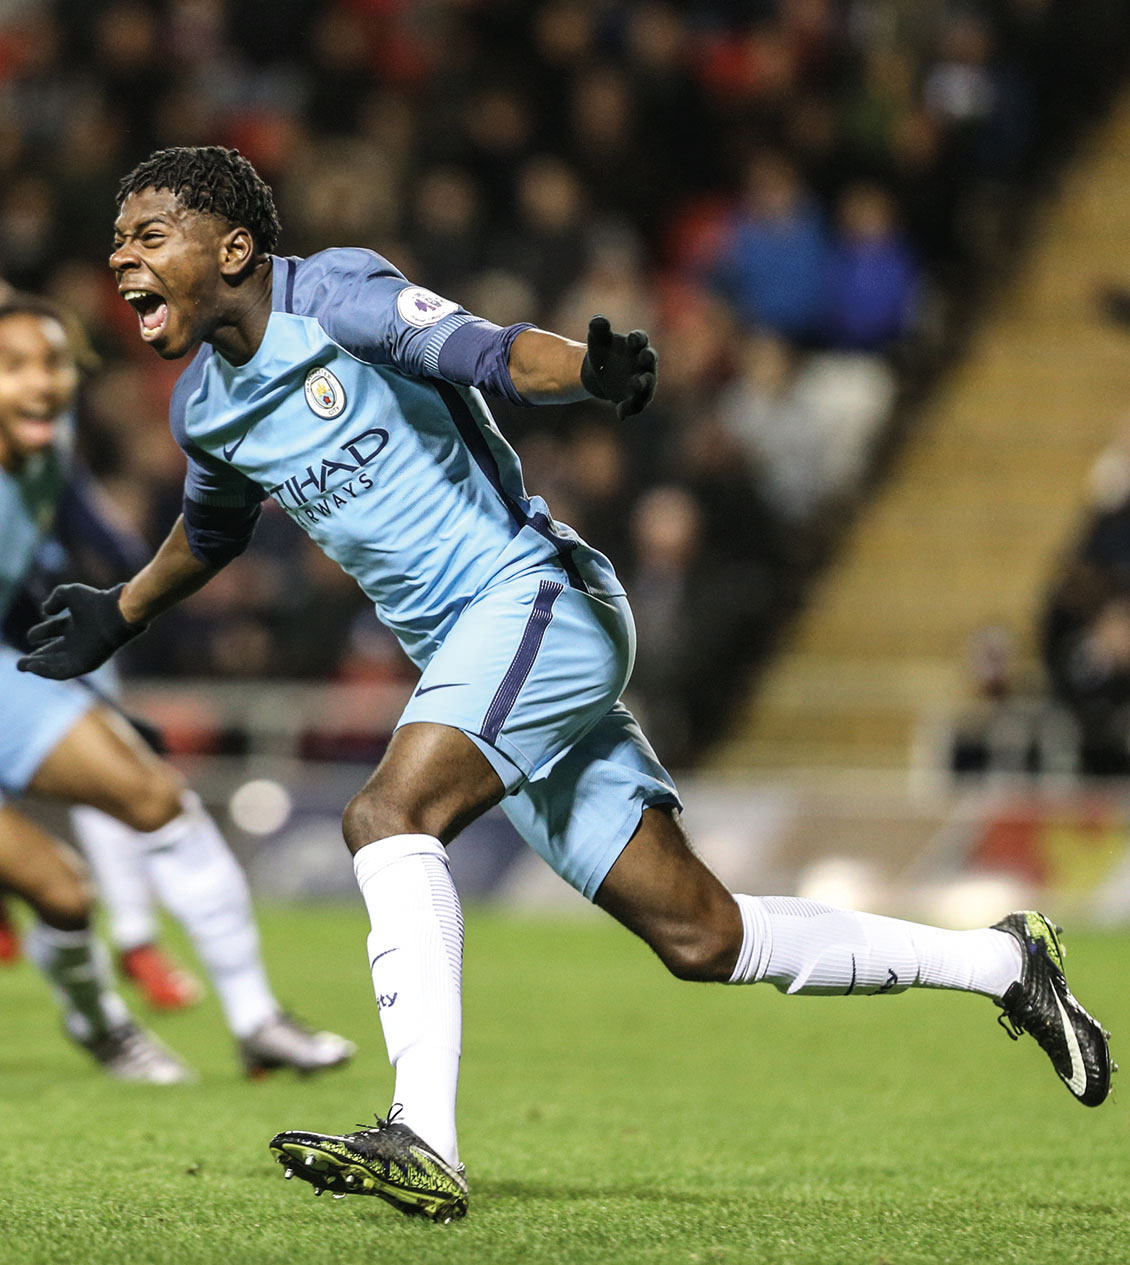 Manchester City's Isaac Buckley Ricketts-celebrates scoring against Manchester United